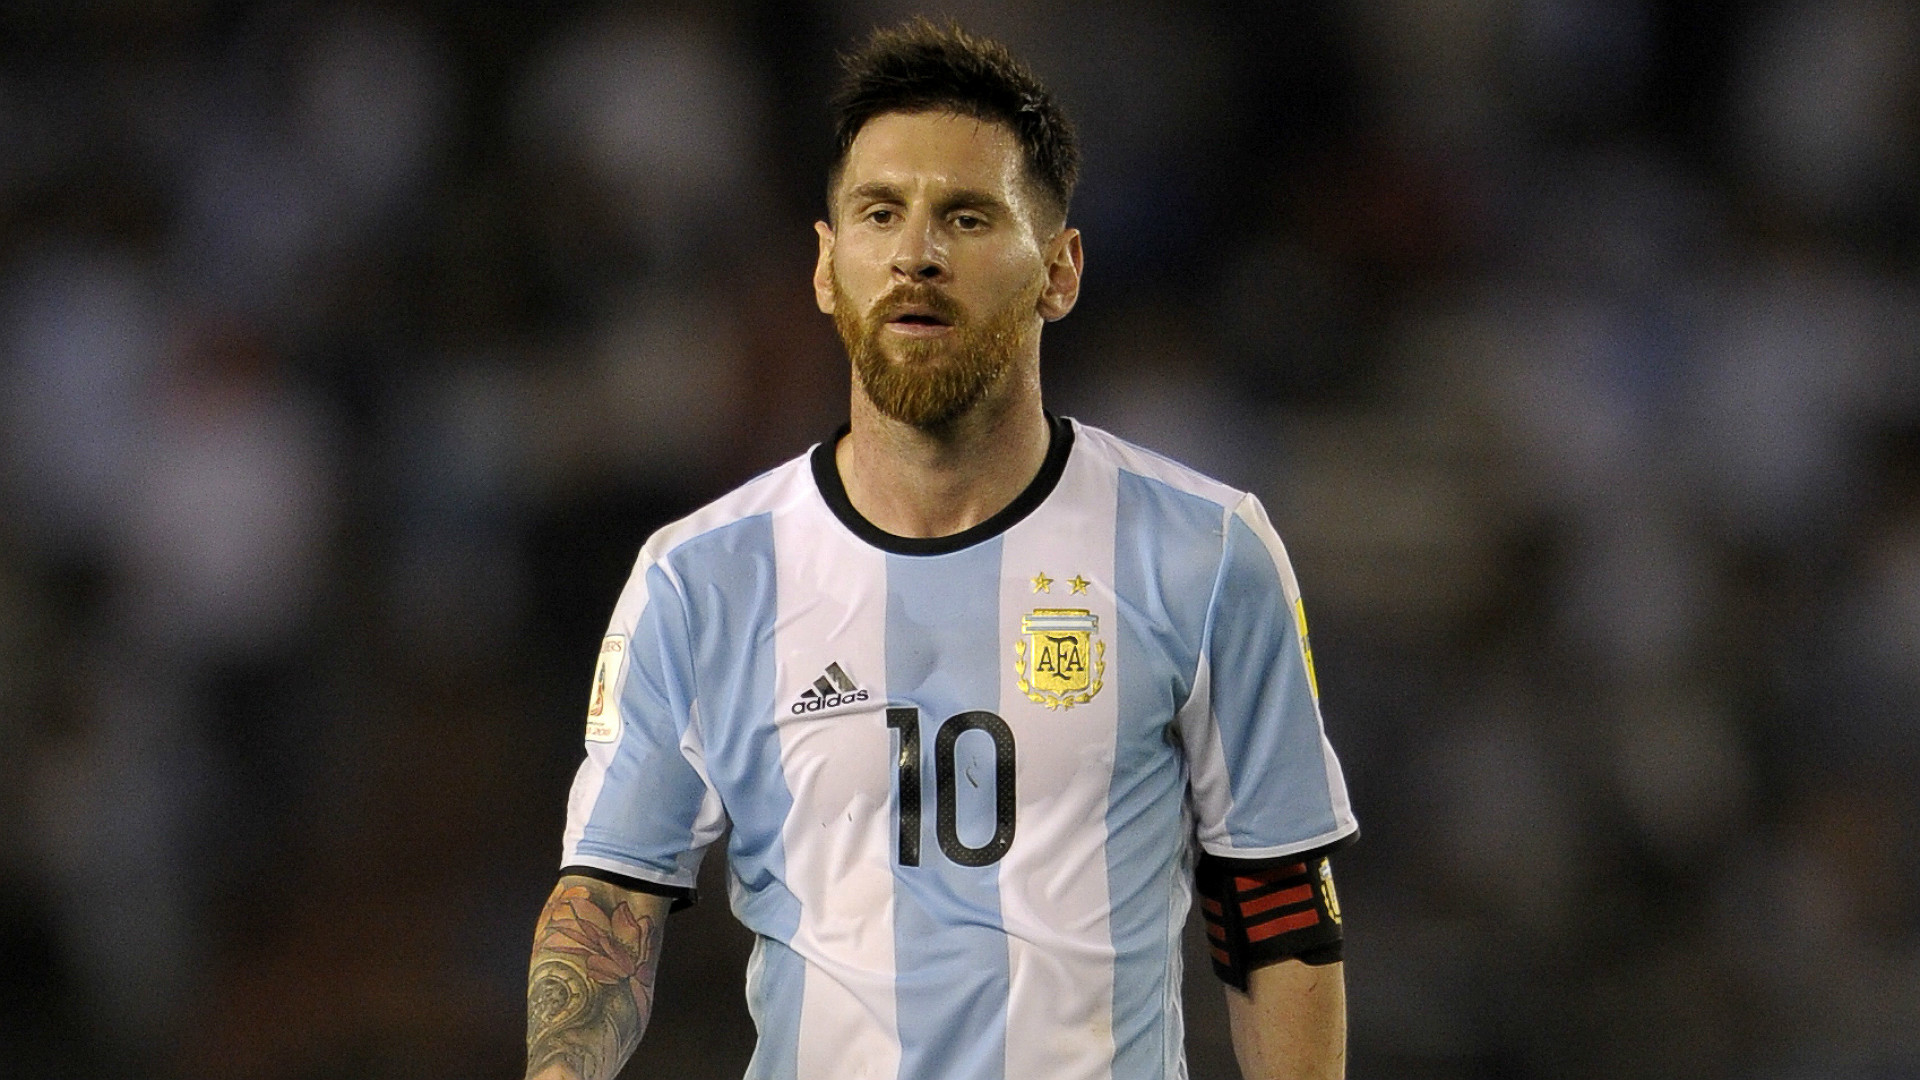 Lionel Messi Full Size Hd: Lionel Messi Wallpapers 2018 (81+ Images